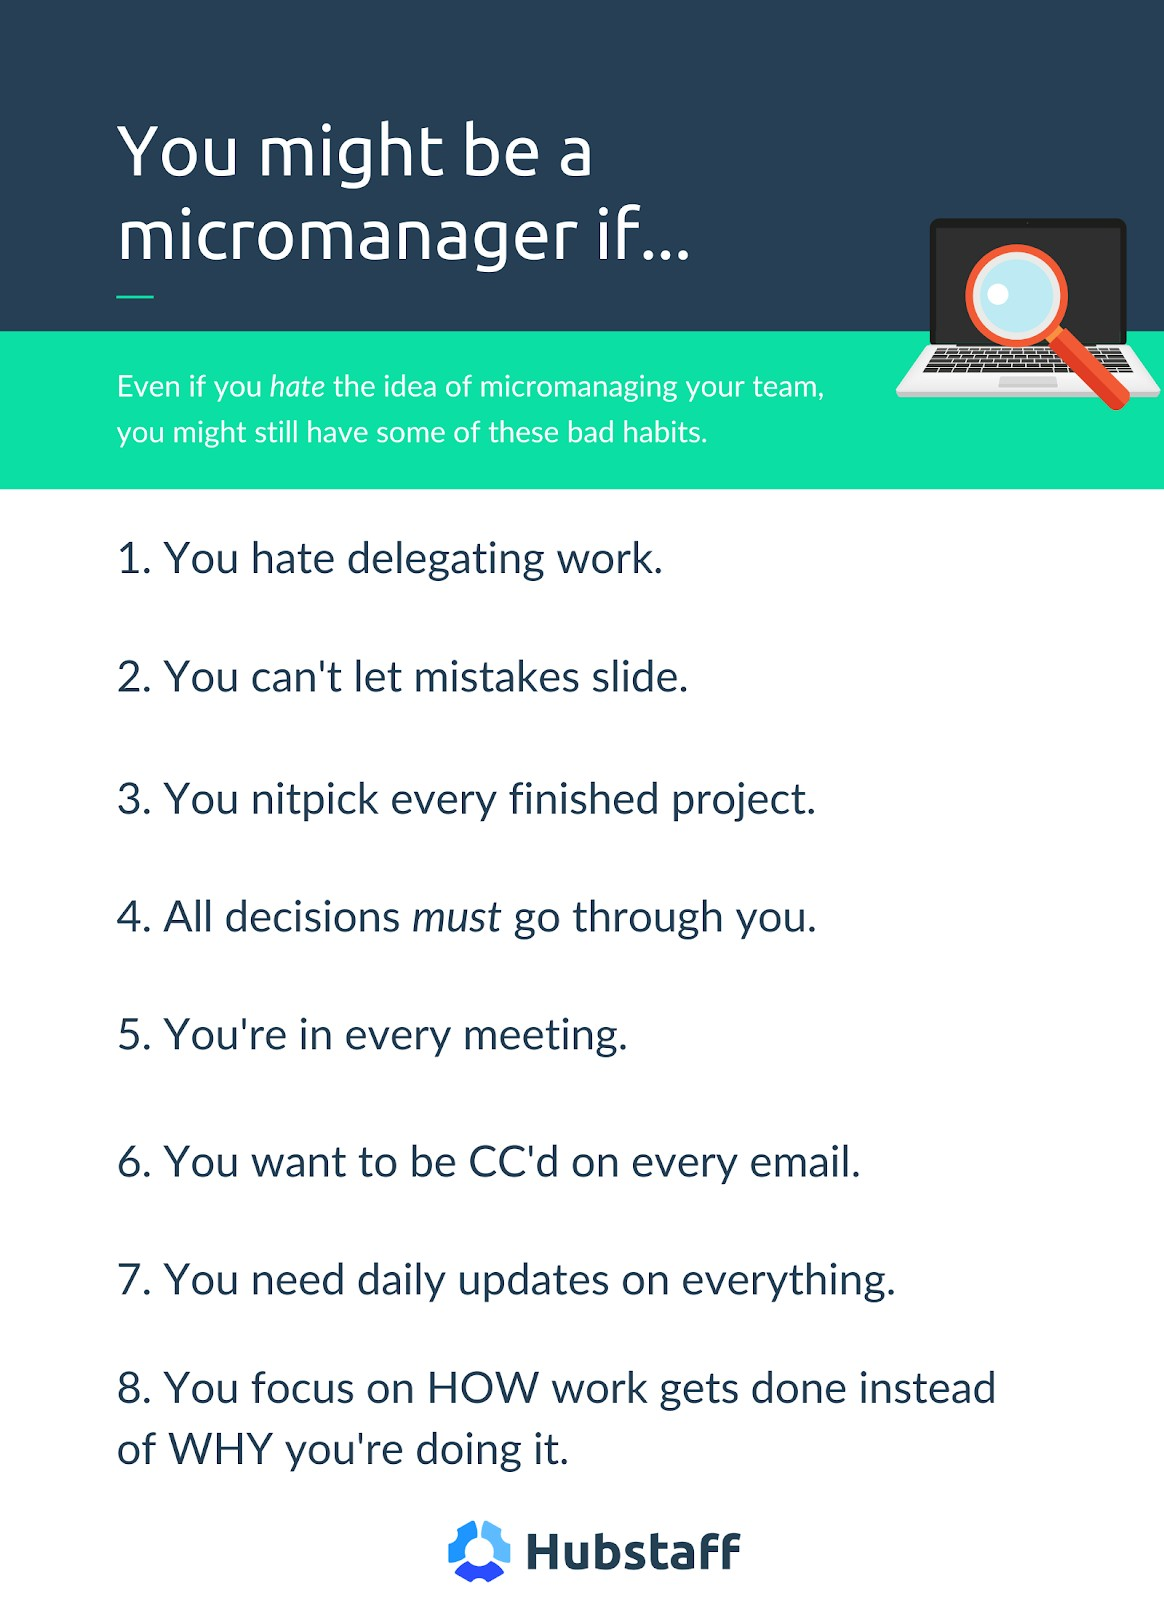 Signs of being a micromanager